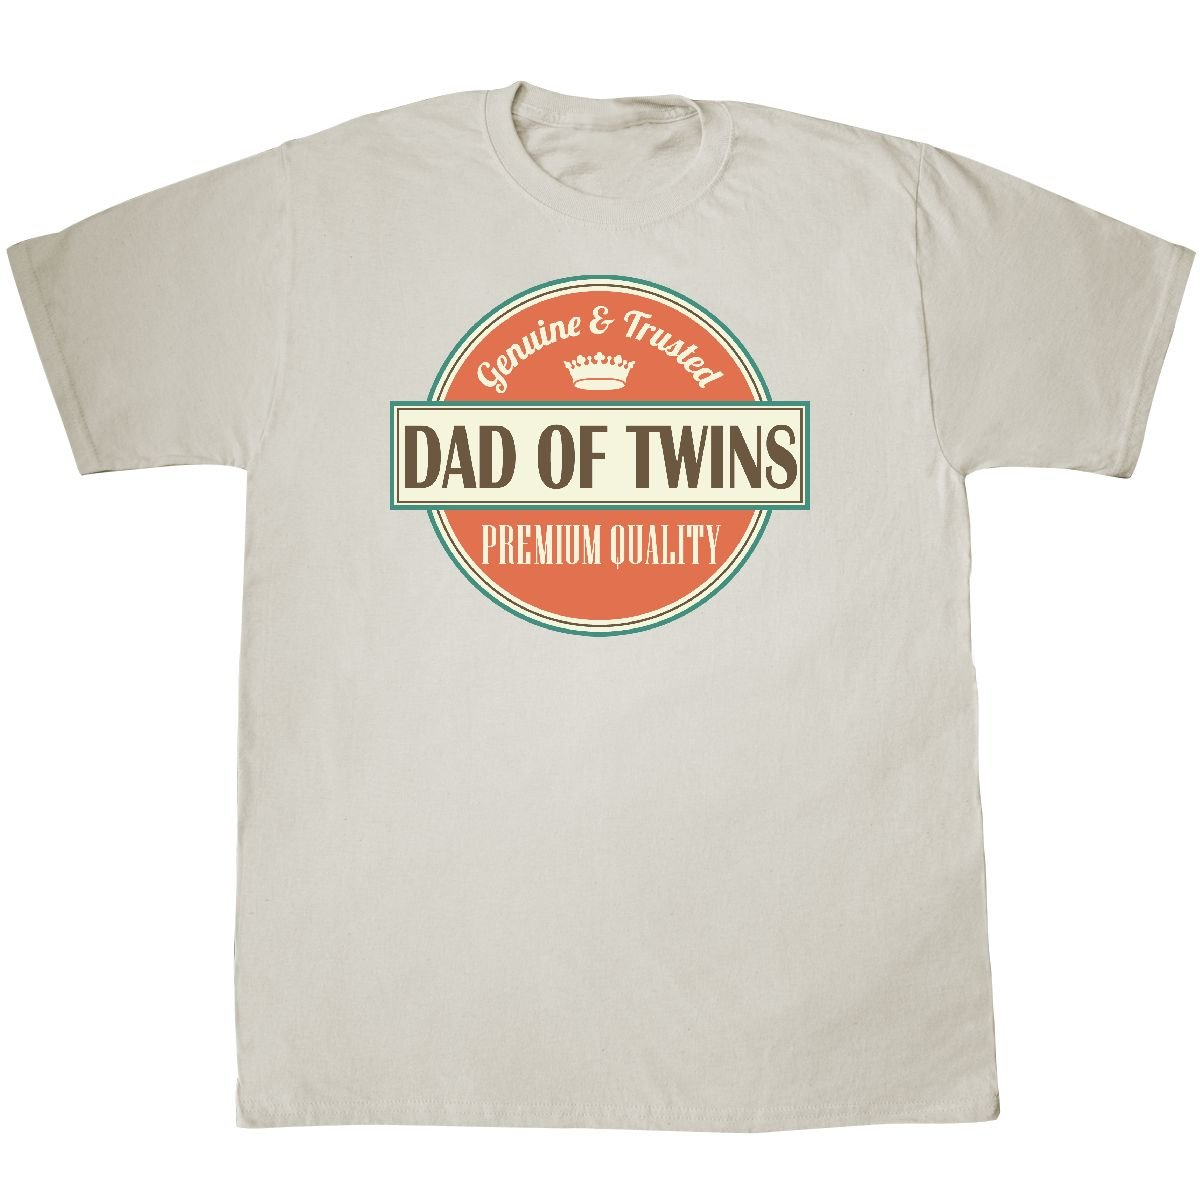 6e093a85 Inktastic Dad Of Twins vintage T-Shirt XXX-Large Natural: Amazon.ca:  Clothing & Accessories